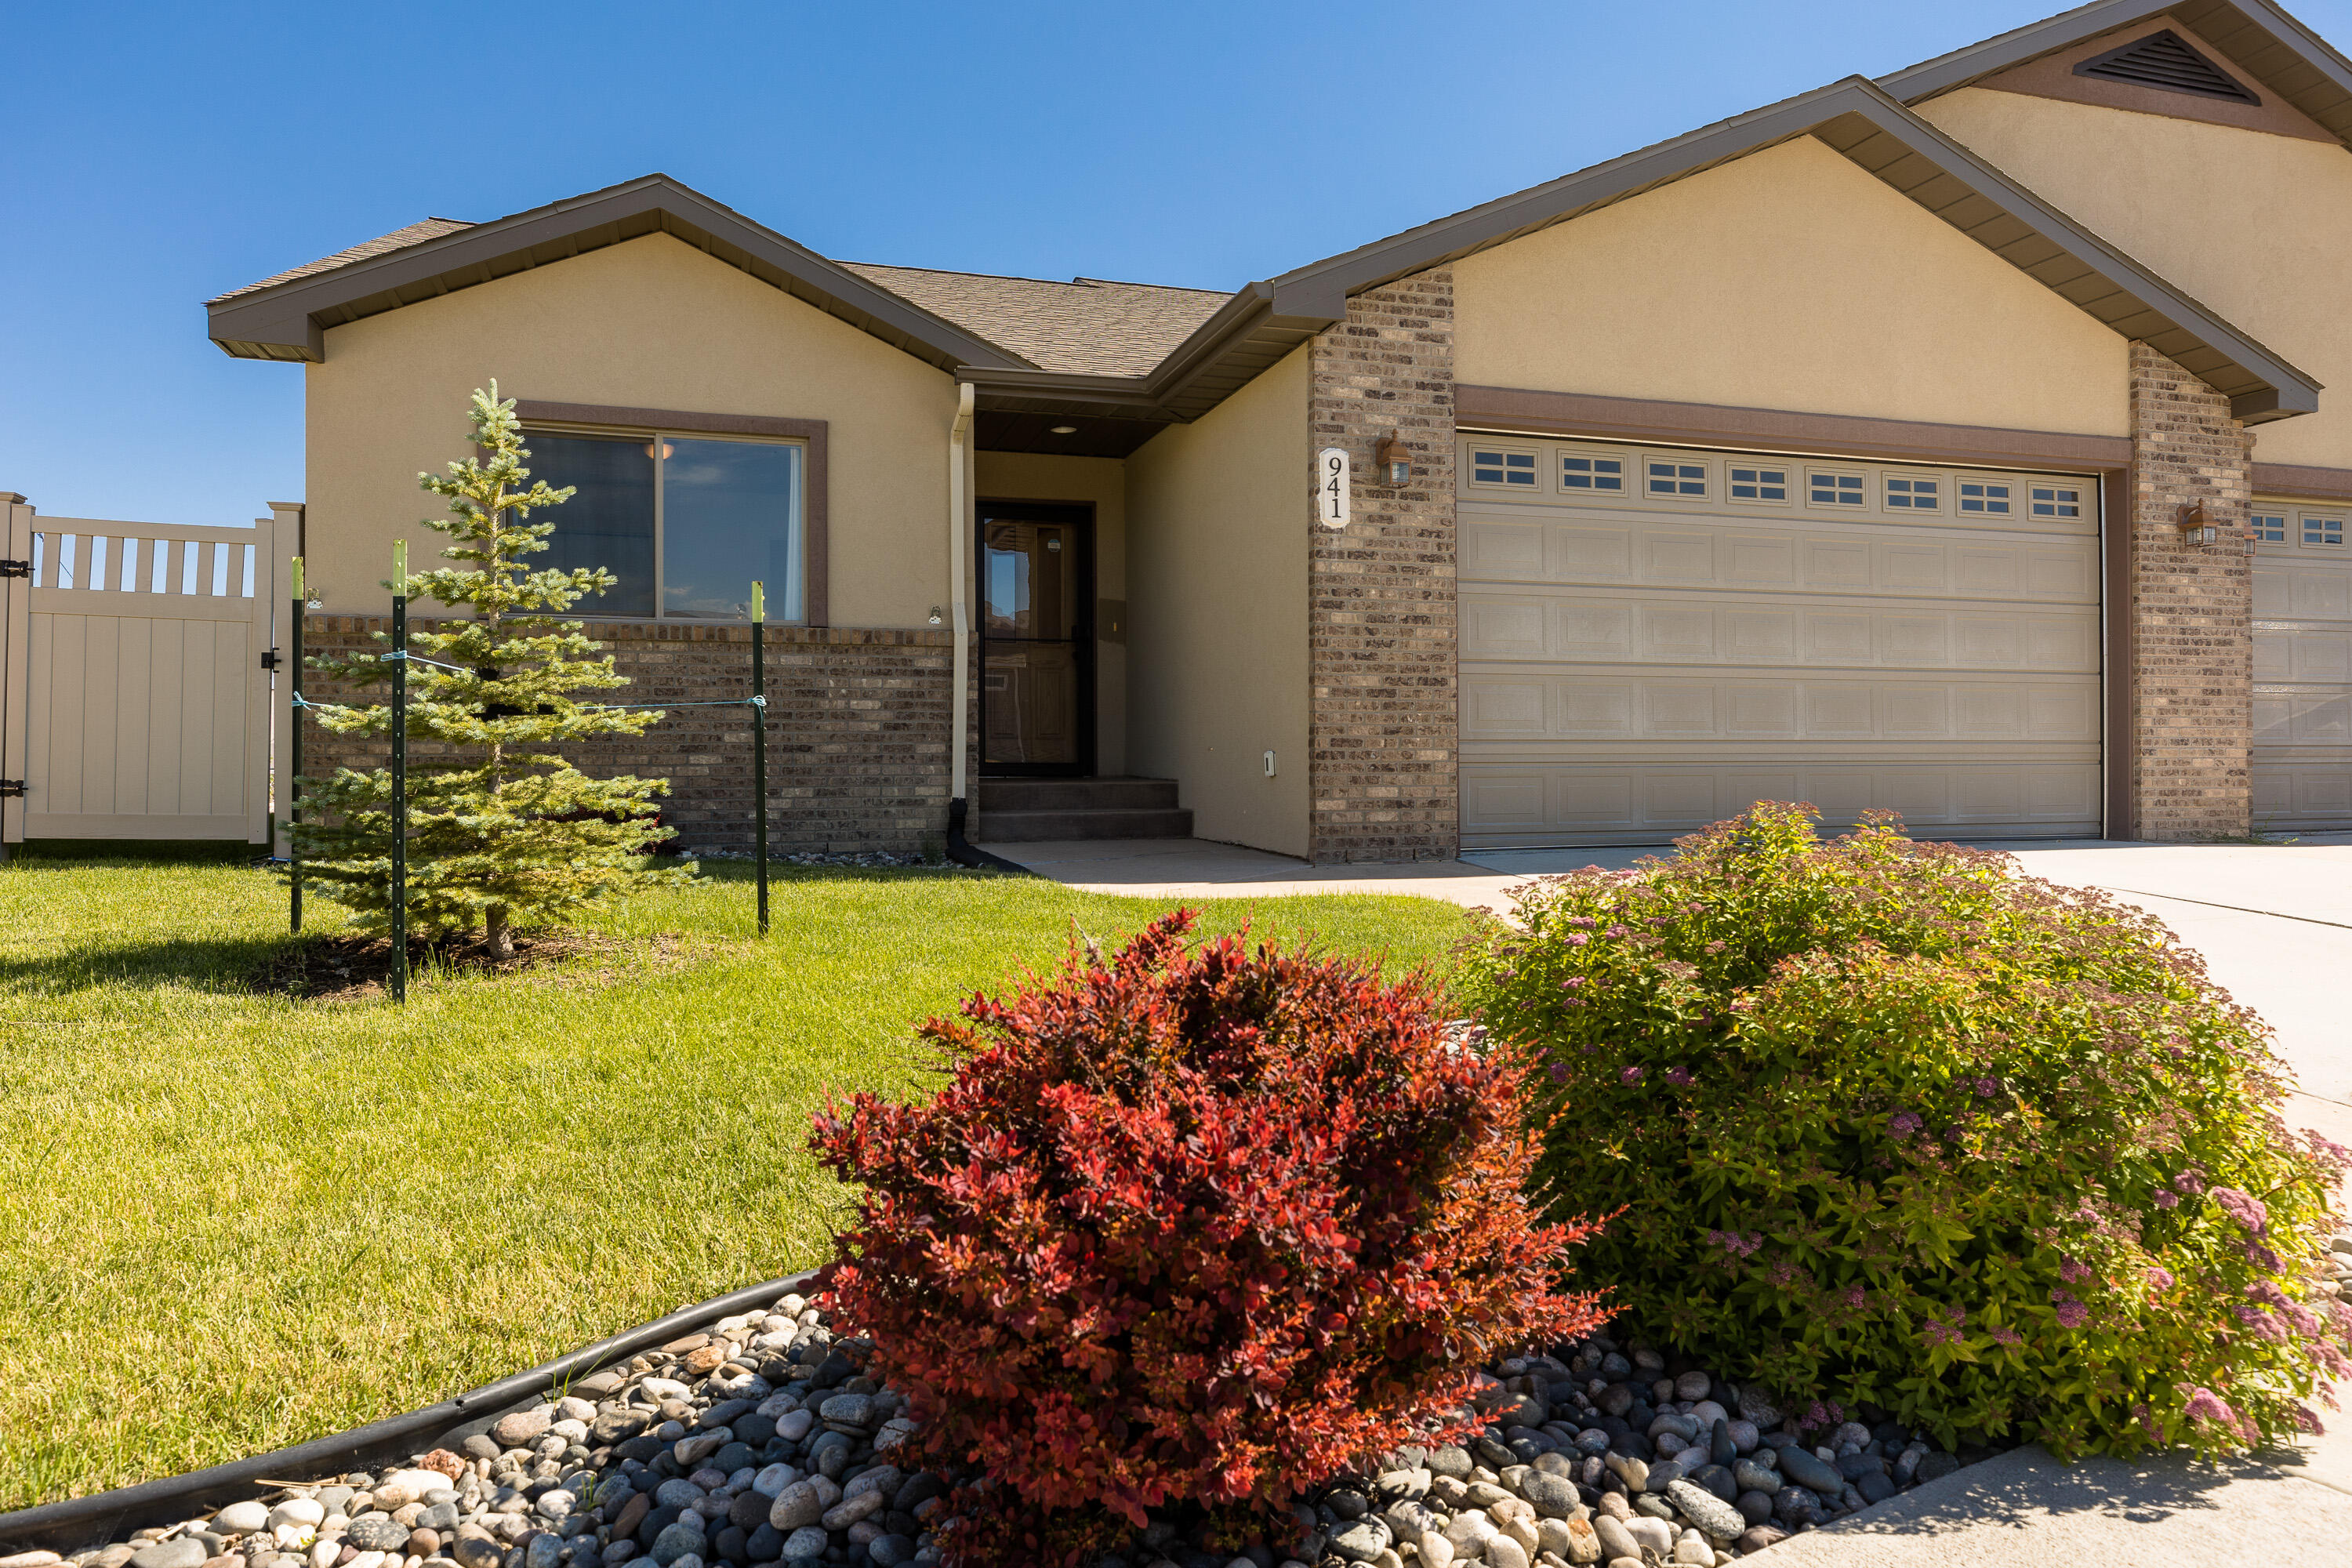 941 Pinyon Place, Sheridan, Wyoming 82801, 2 Bedrooms Bedrooms, ,2 BathroomsBathrooms,Residential,For Sale,Pinyon,21-644